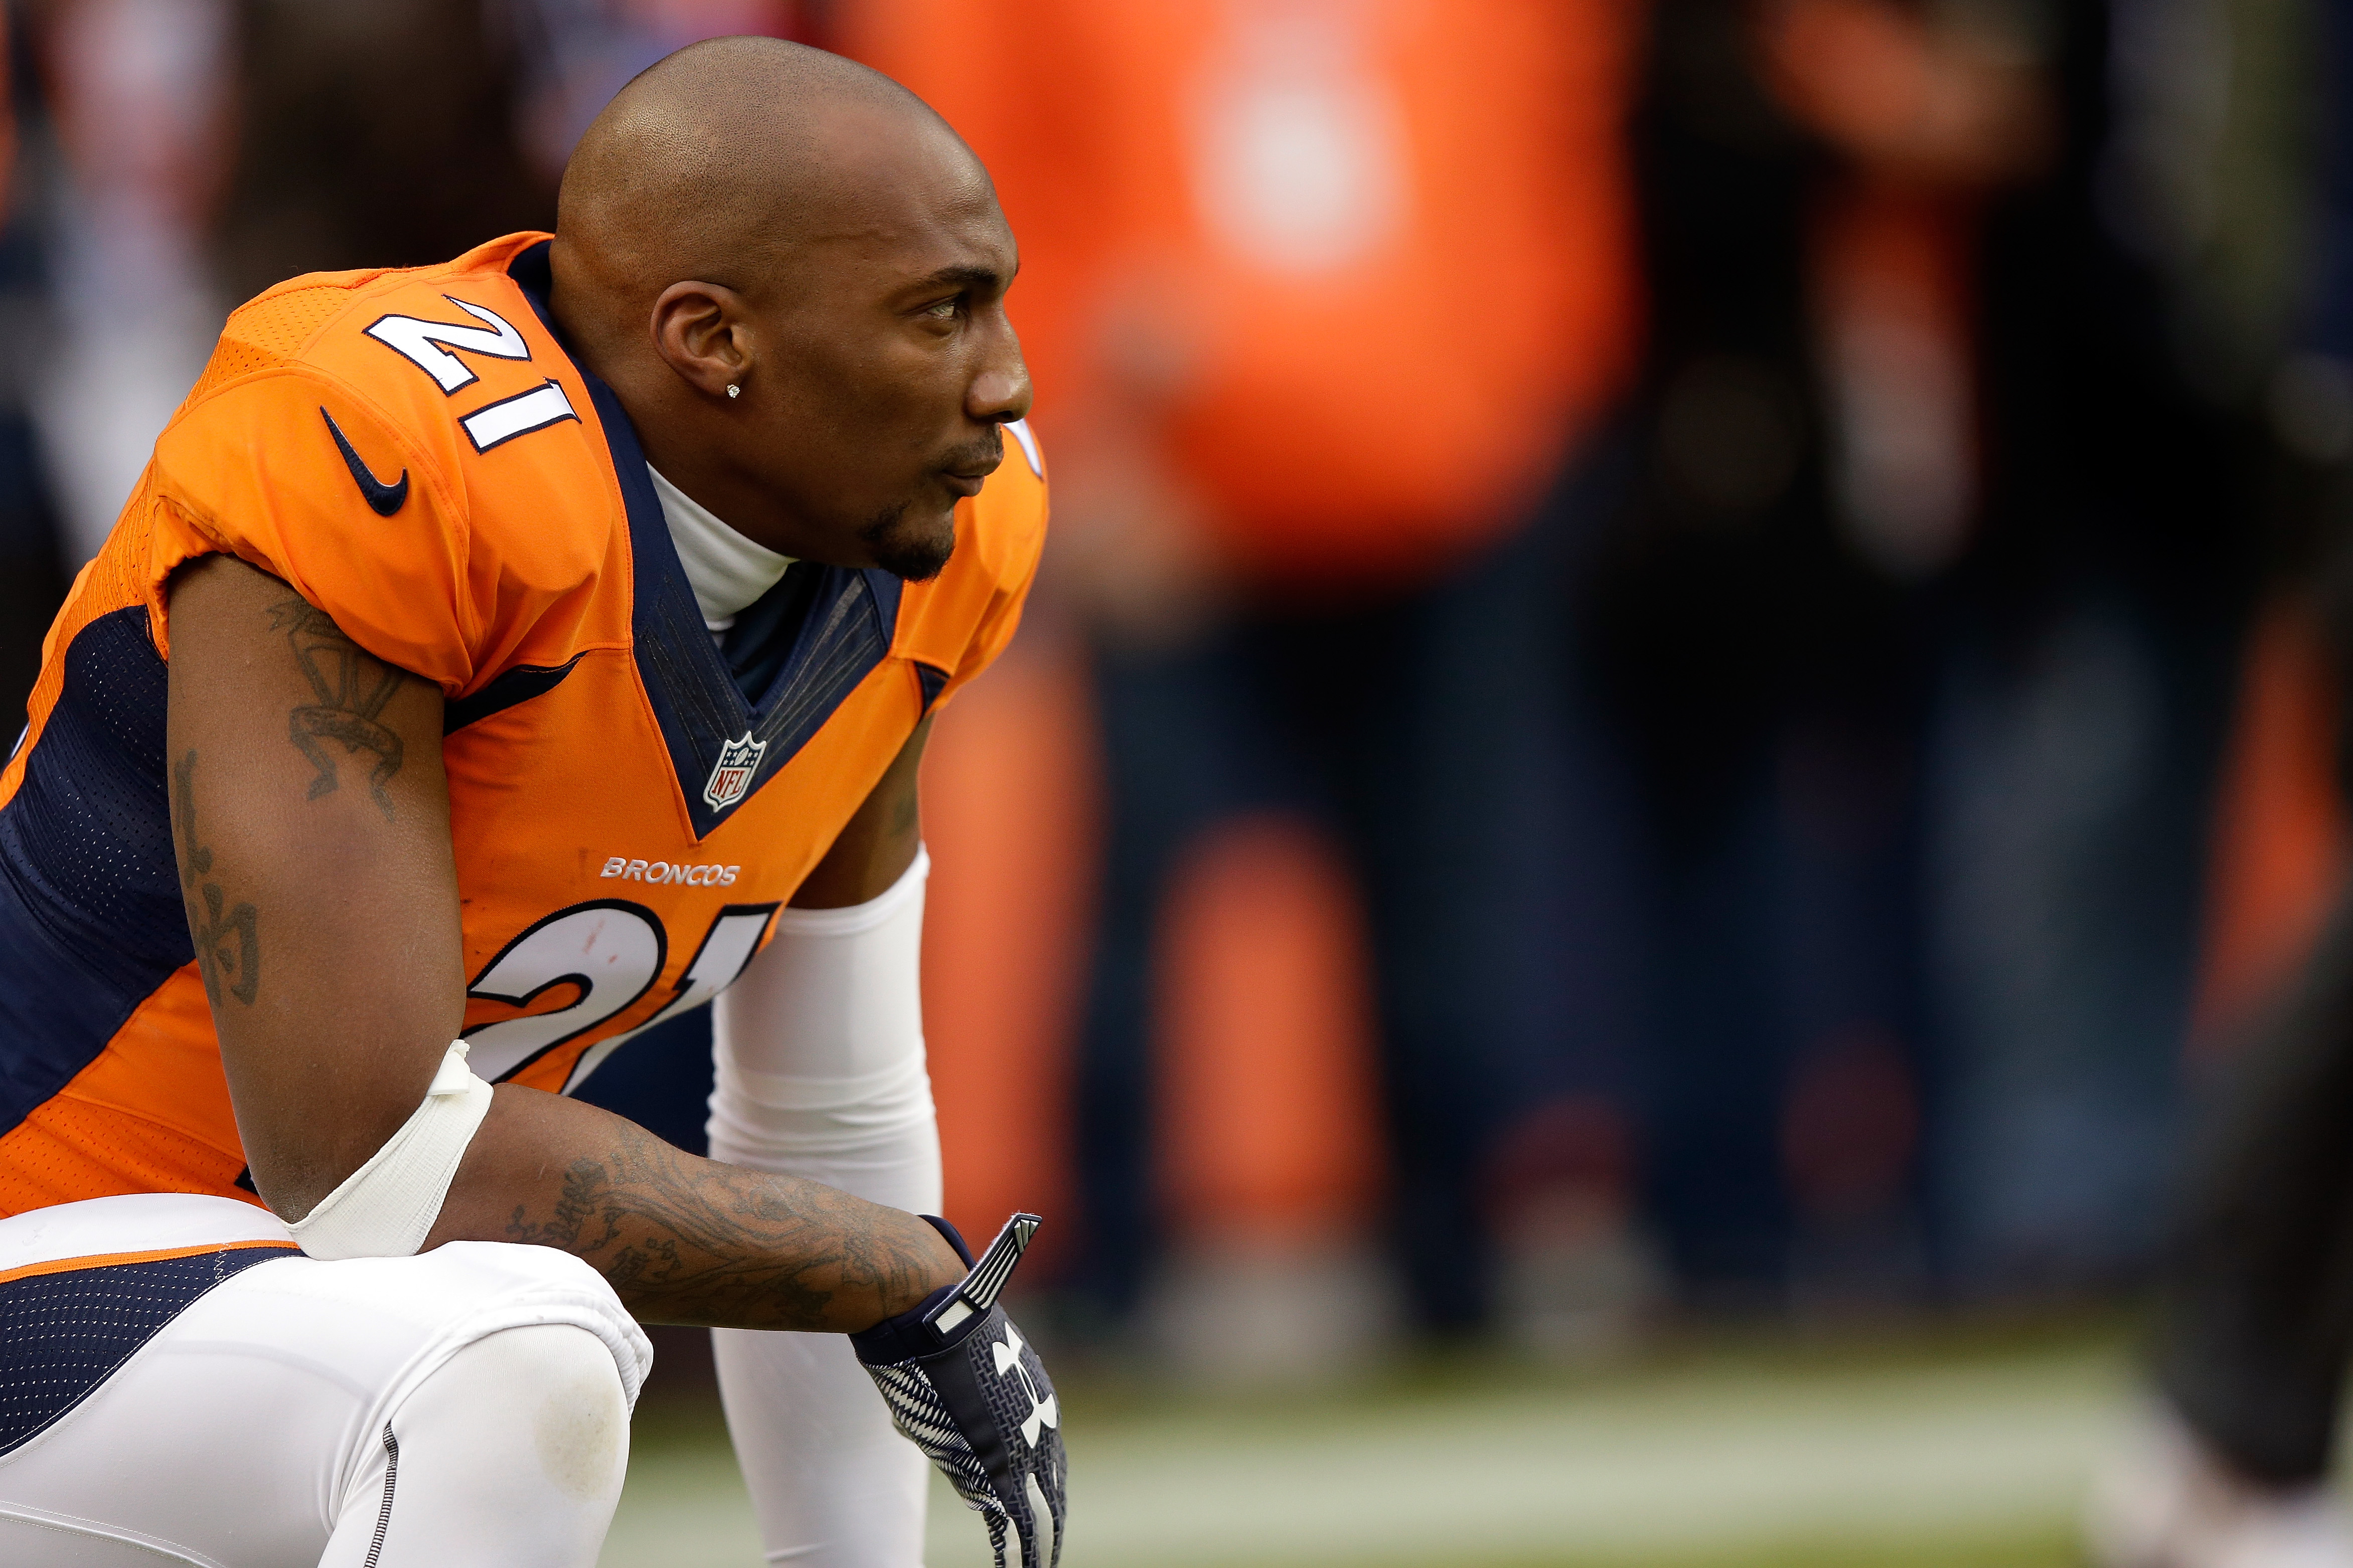 Broncos Aqib Talib to miss White House trip after suffering a